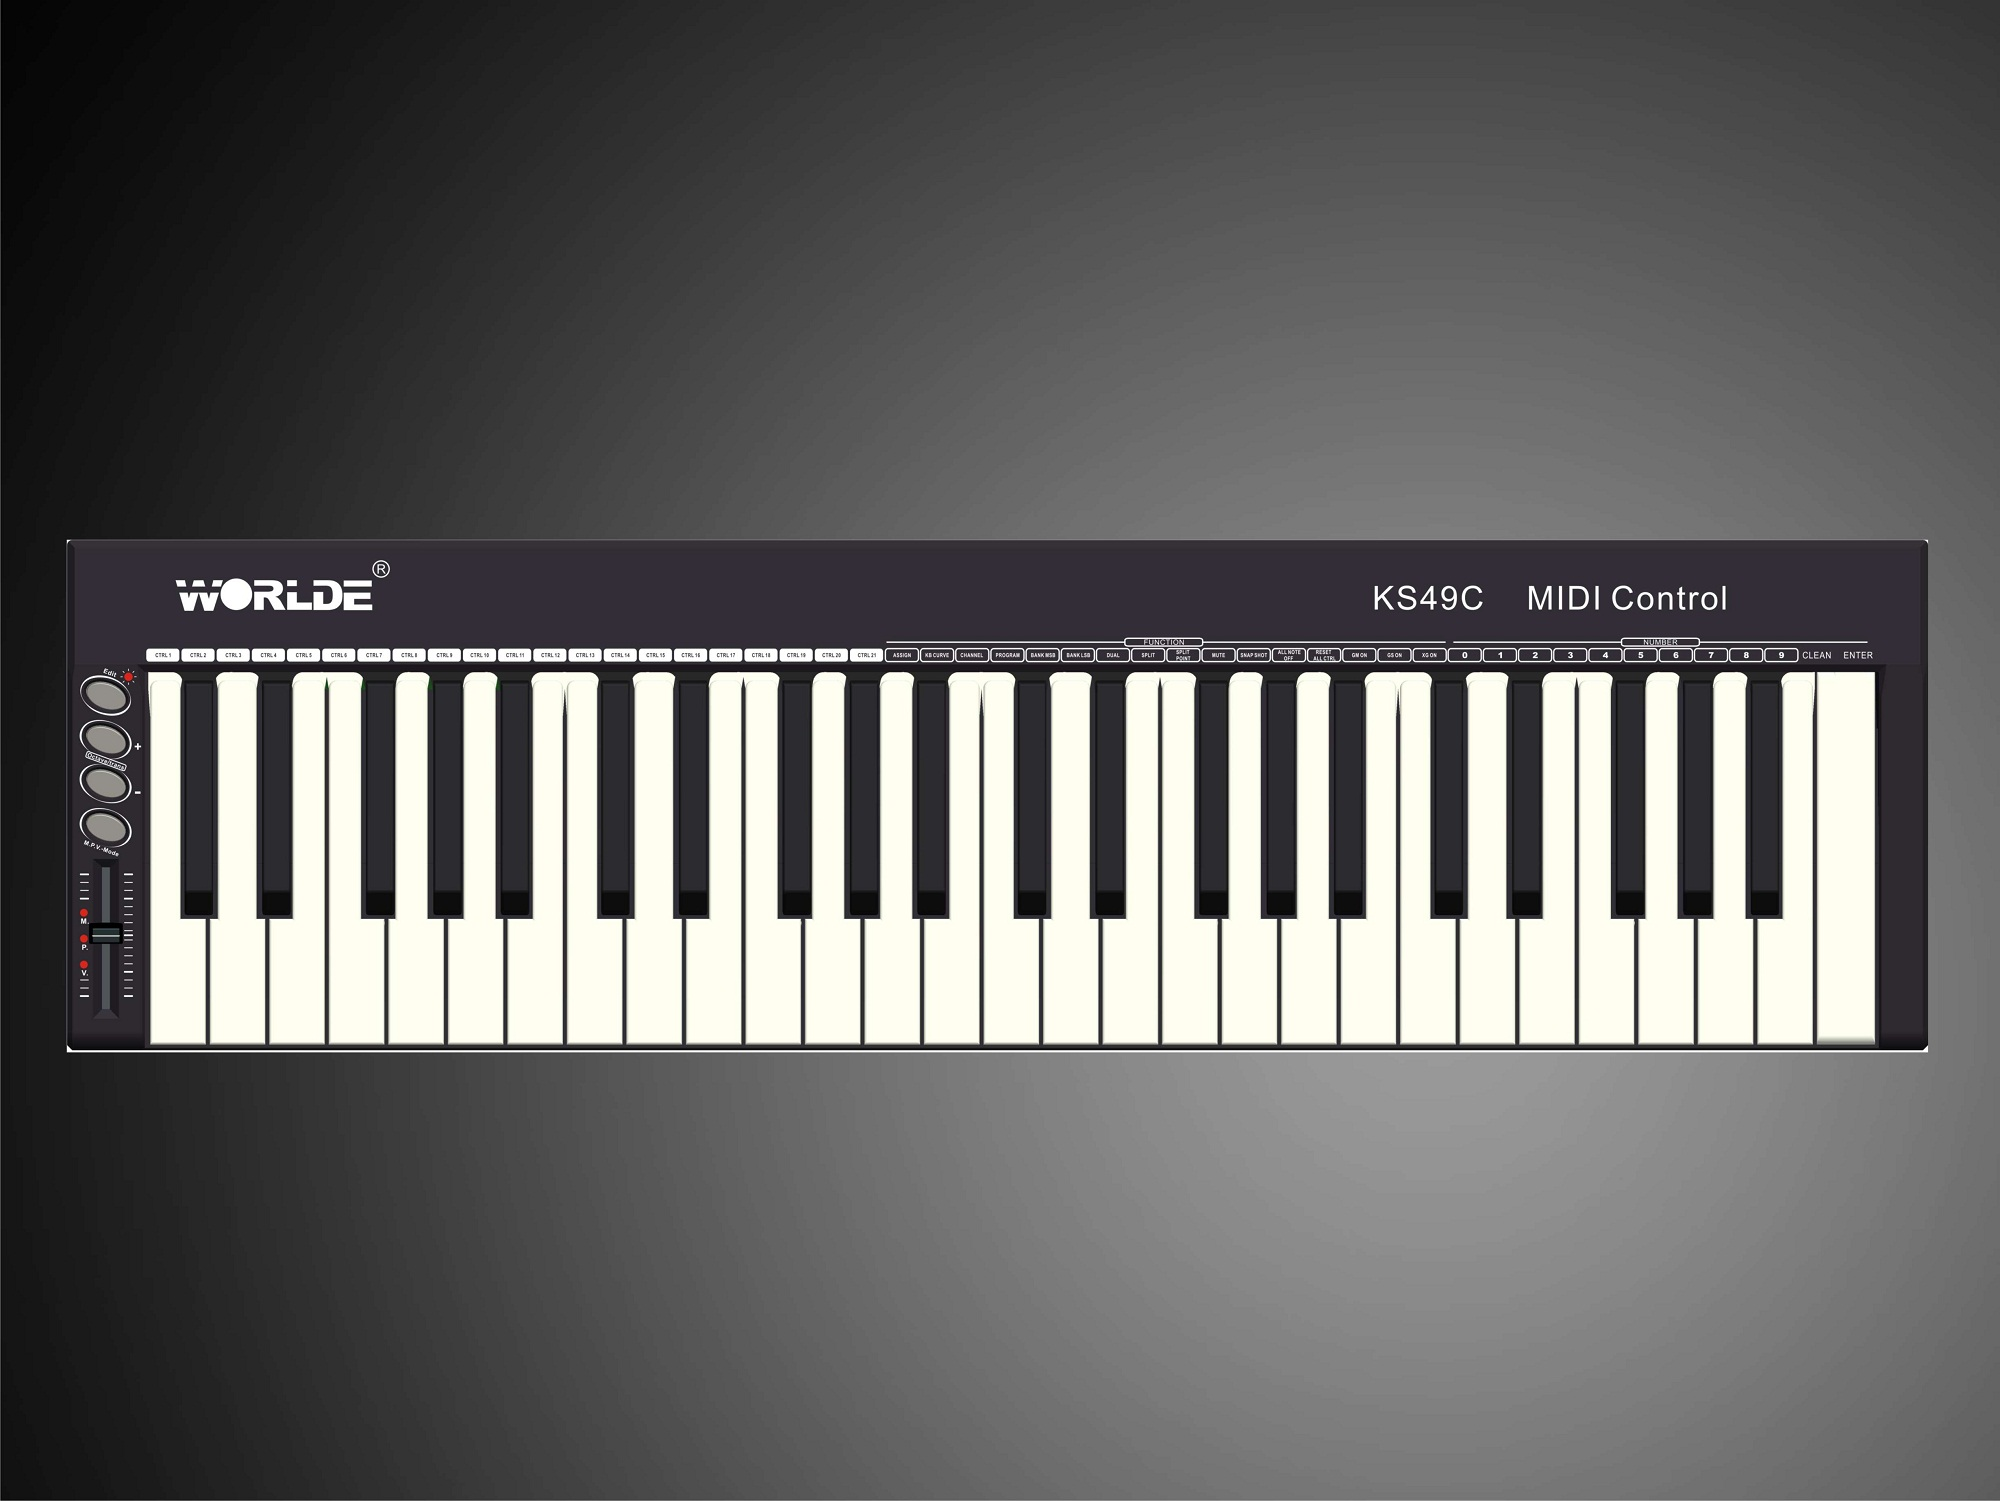 Good Program to learn to play keyboard - Casio Music Forums